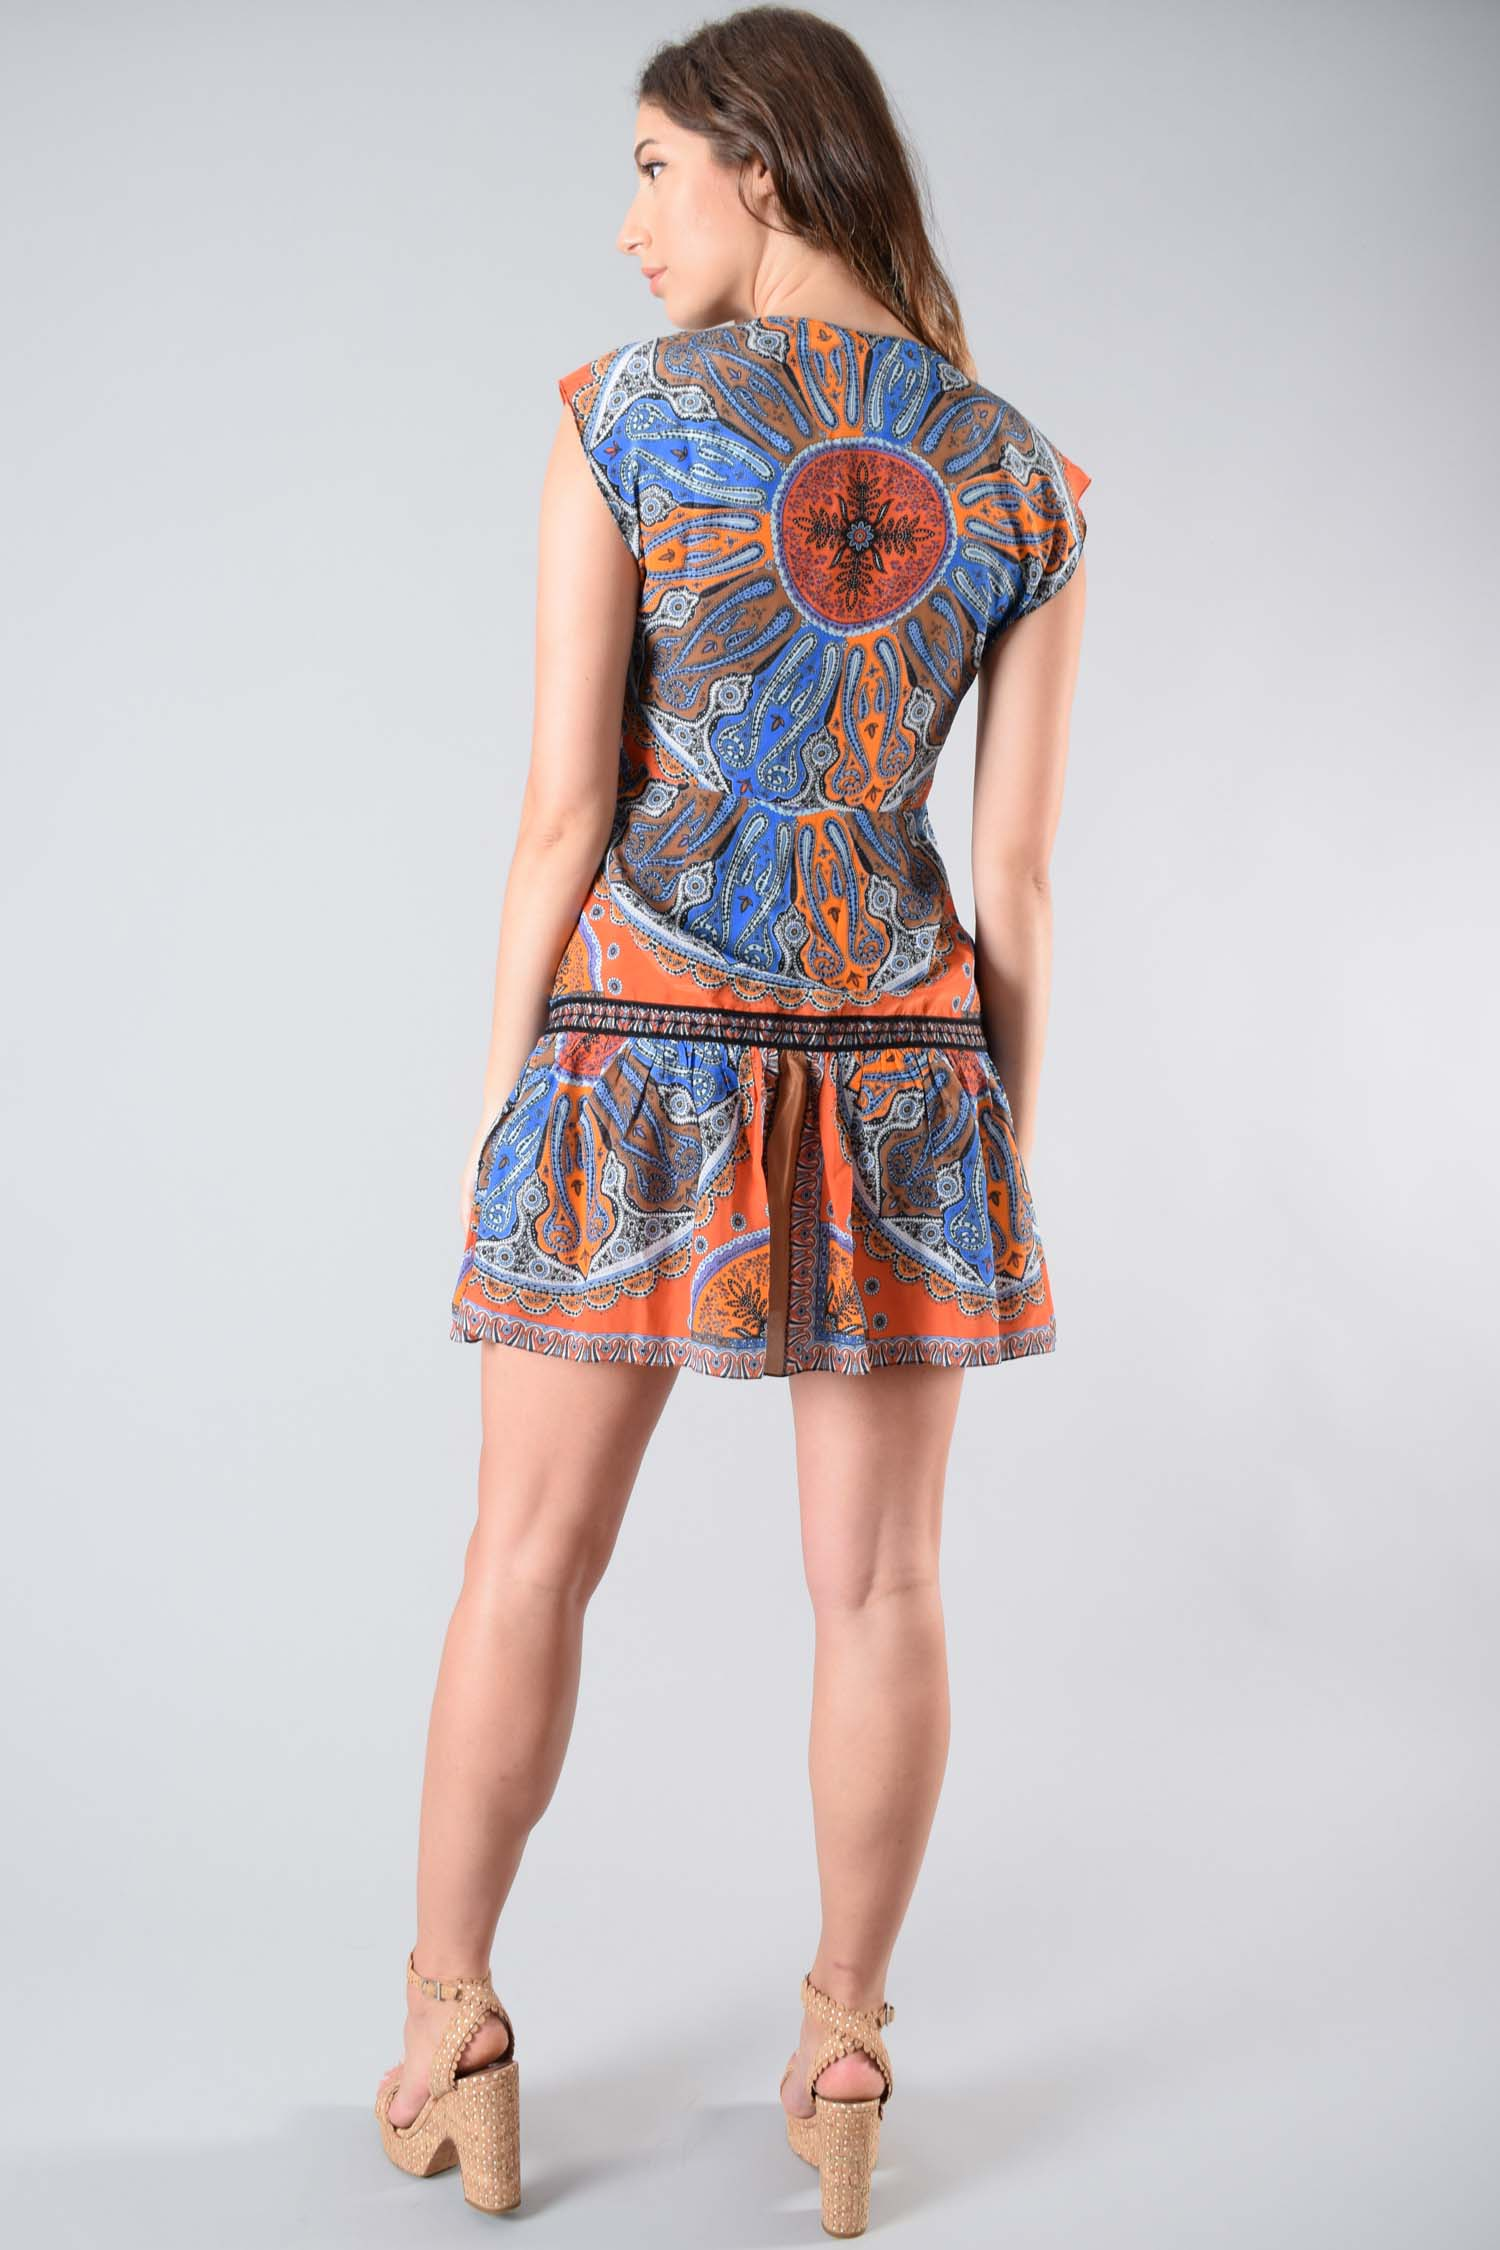 Sandro Orange Paisley Print Sleeveless Dress Size 38